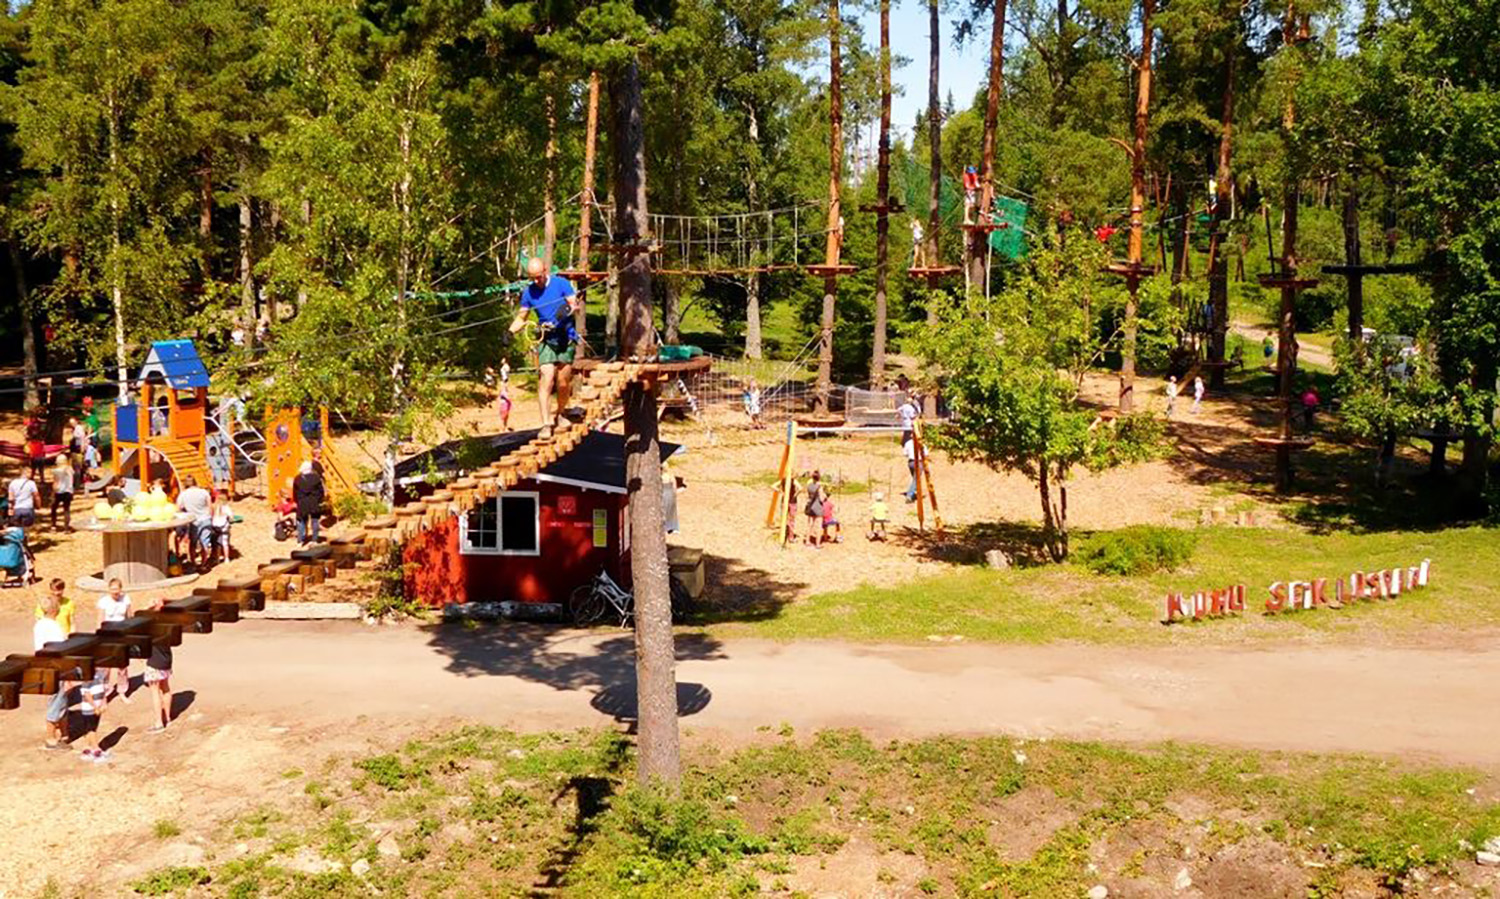 Adventure Parks age good places to visit when spending ypur family holiday in Saaremaa